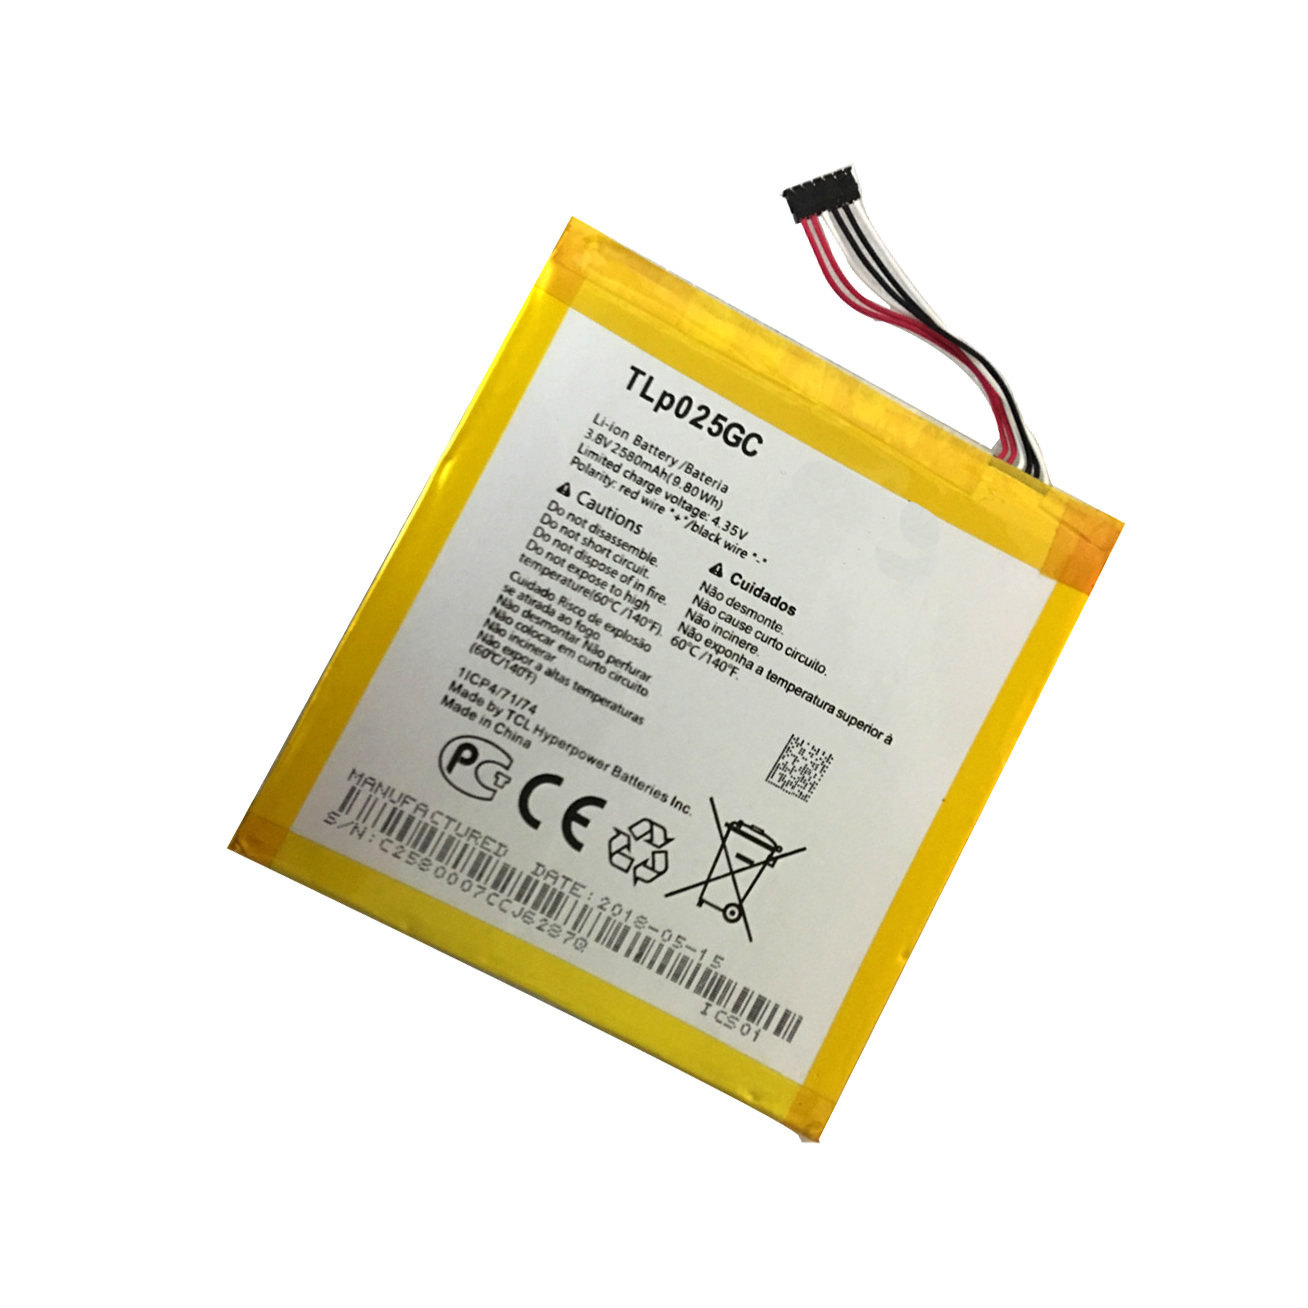 New High Quality TLP025GC 2580mAh Battery for Alcatel One Touch Pixi 4 (7) 3G 9003X 9003A Cell phone image